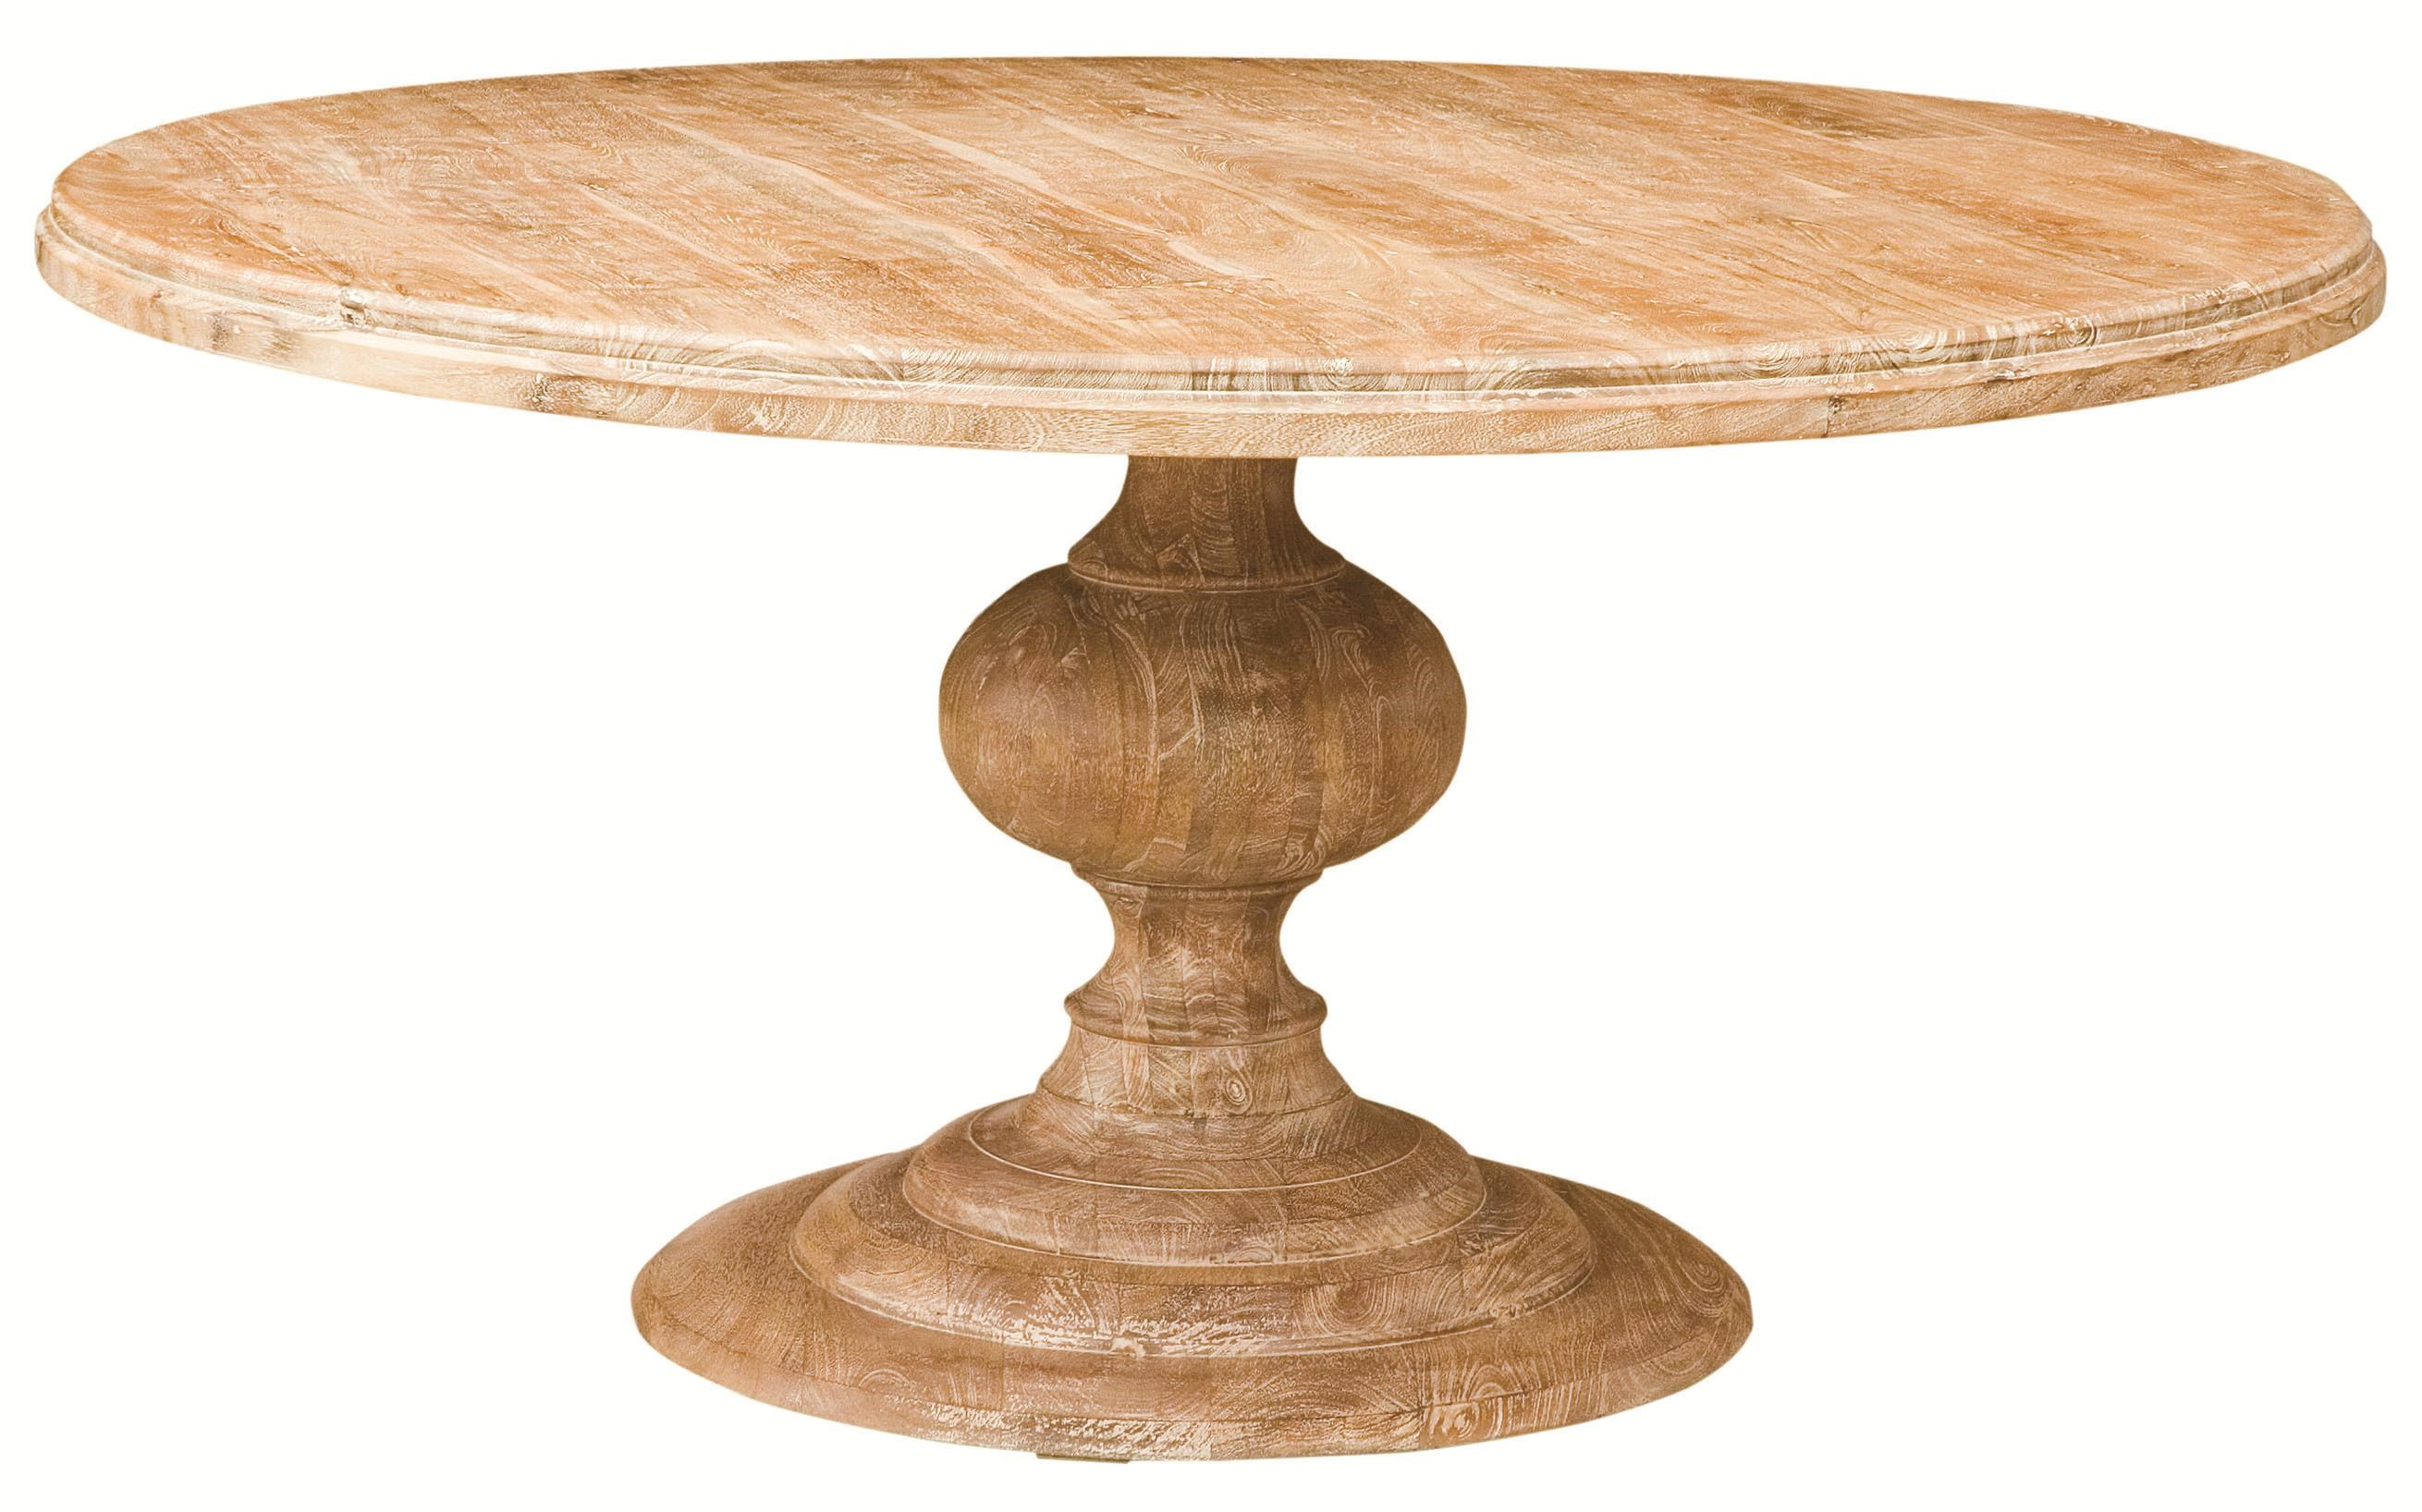 Four Hands Magnolia 60u0026quot; Round Dining Table with Pedestal Base - Belfort Furniture - Dining Room ...